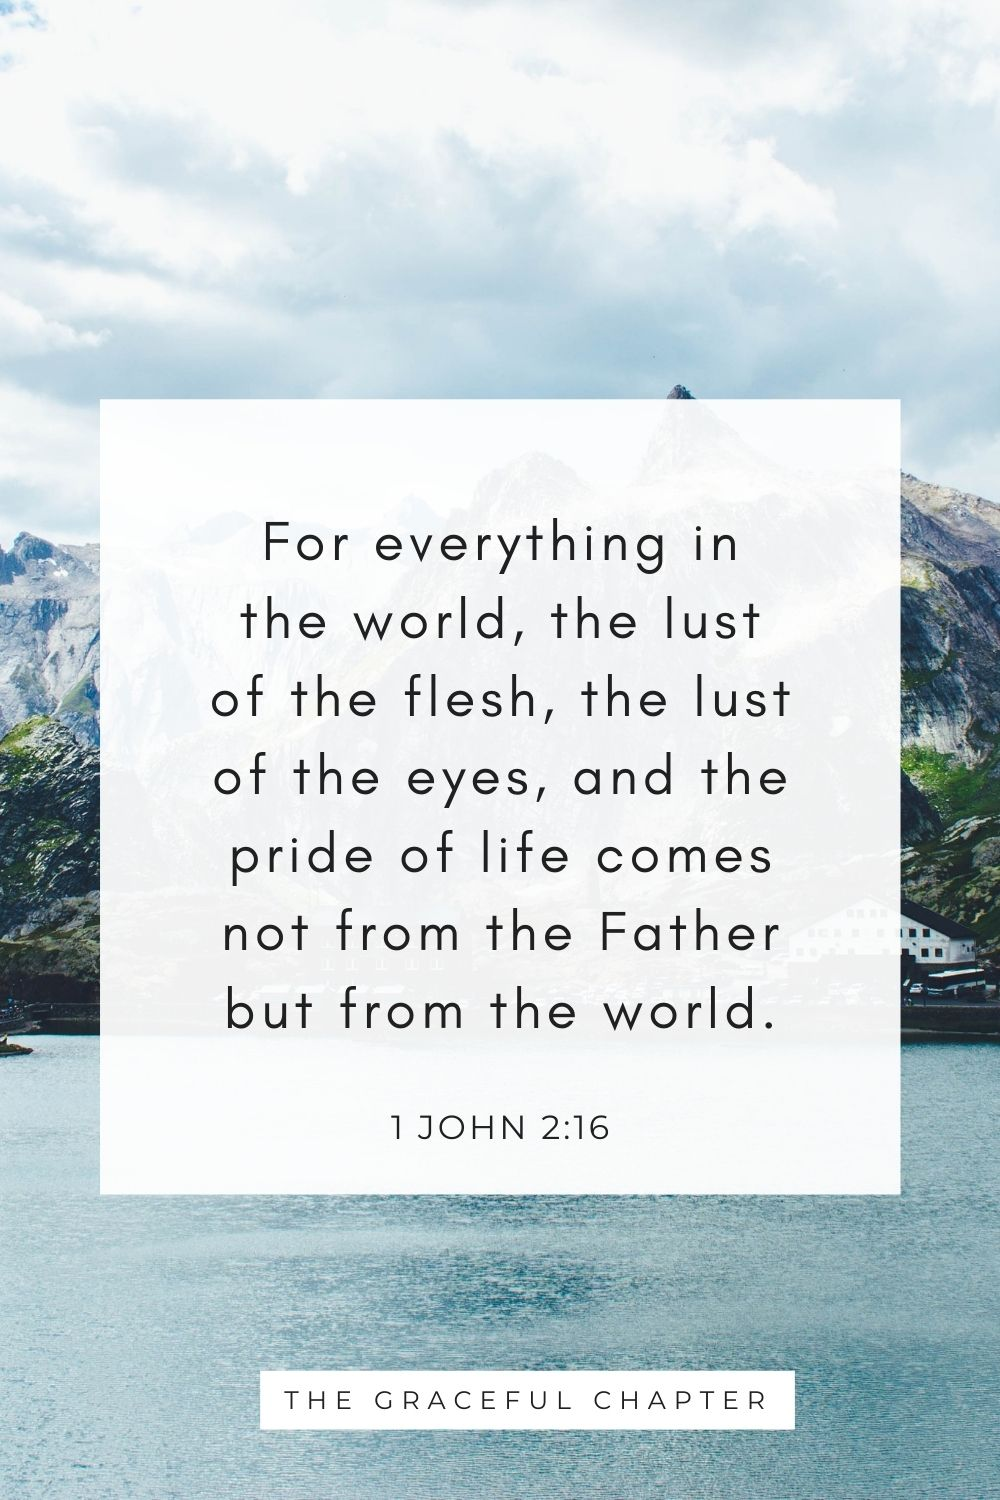 For everything in the world, the lust of the flesh, the lust of the eyes, and the pride of life comes not from the Father but from the world. 1 John 2:16